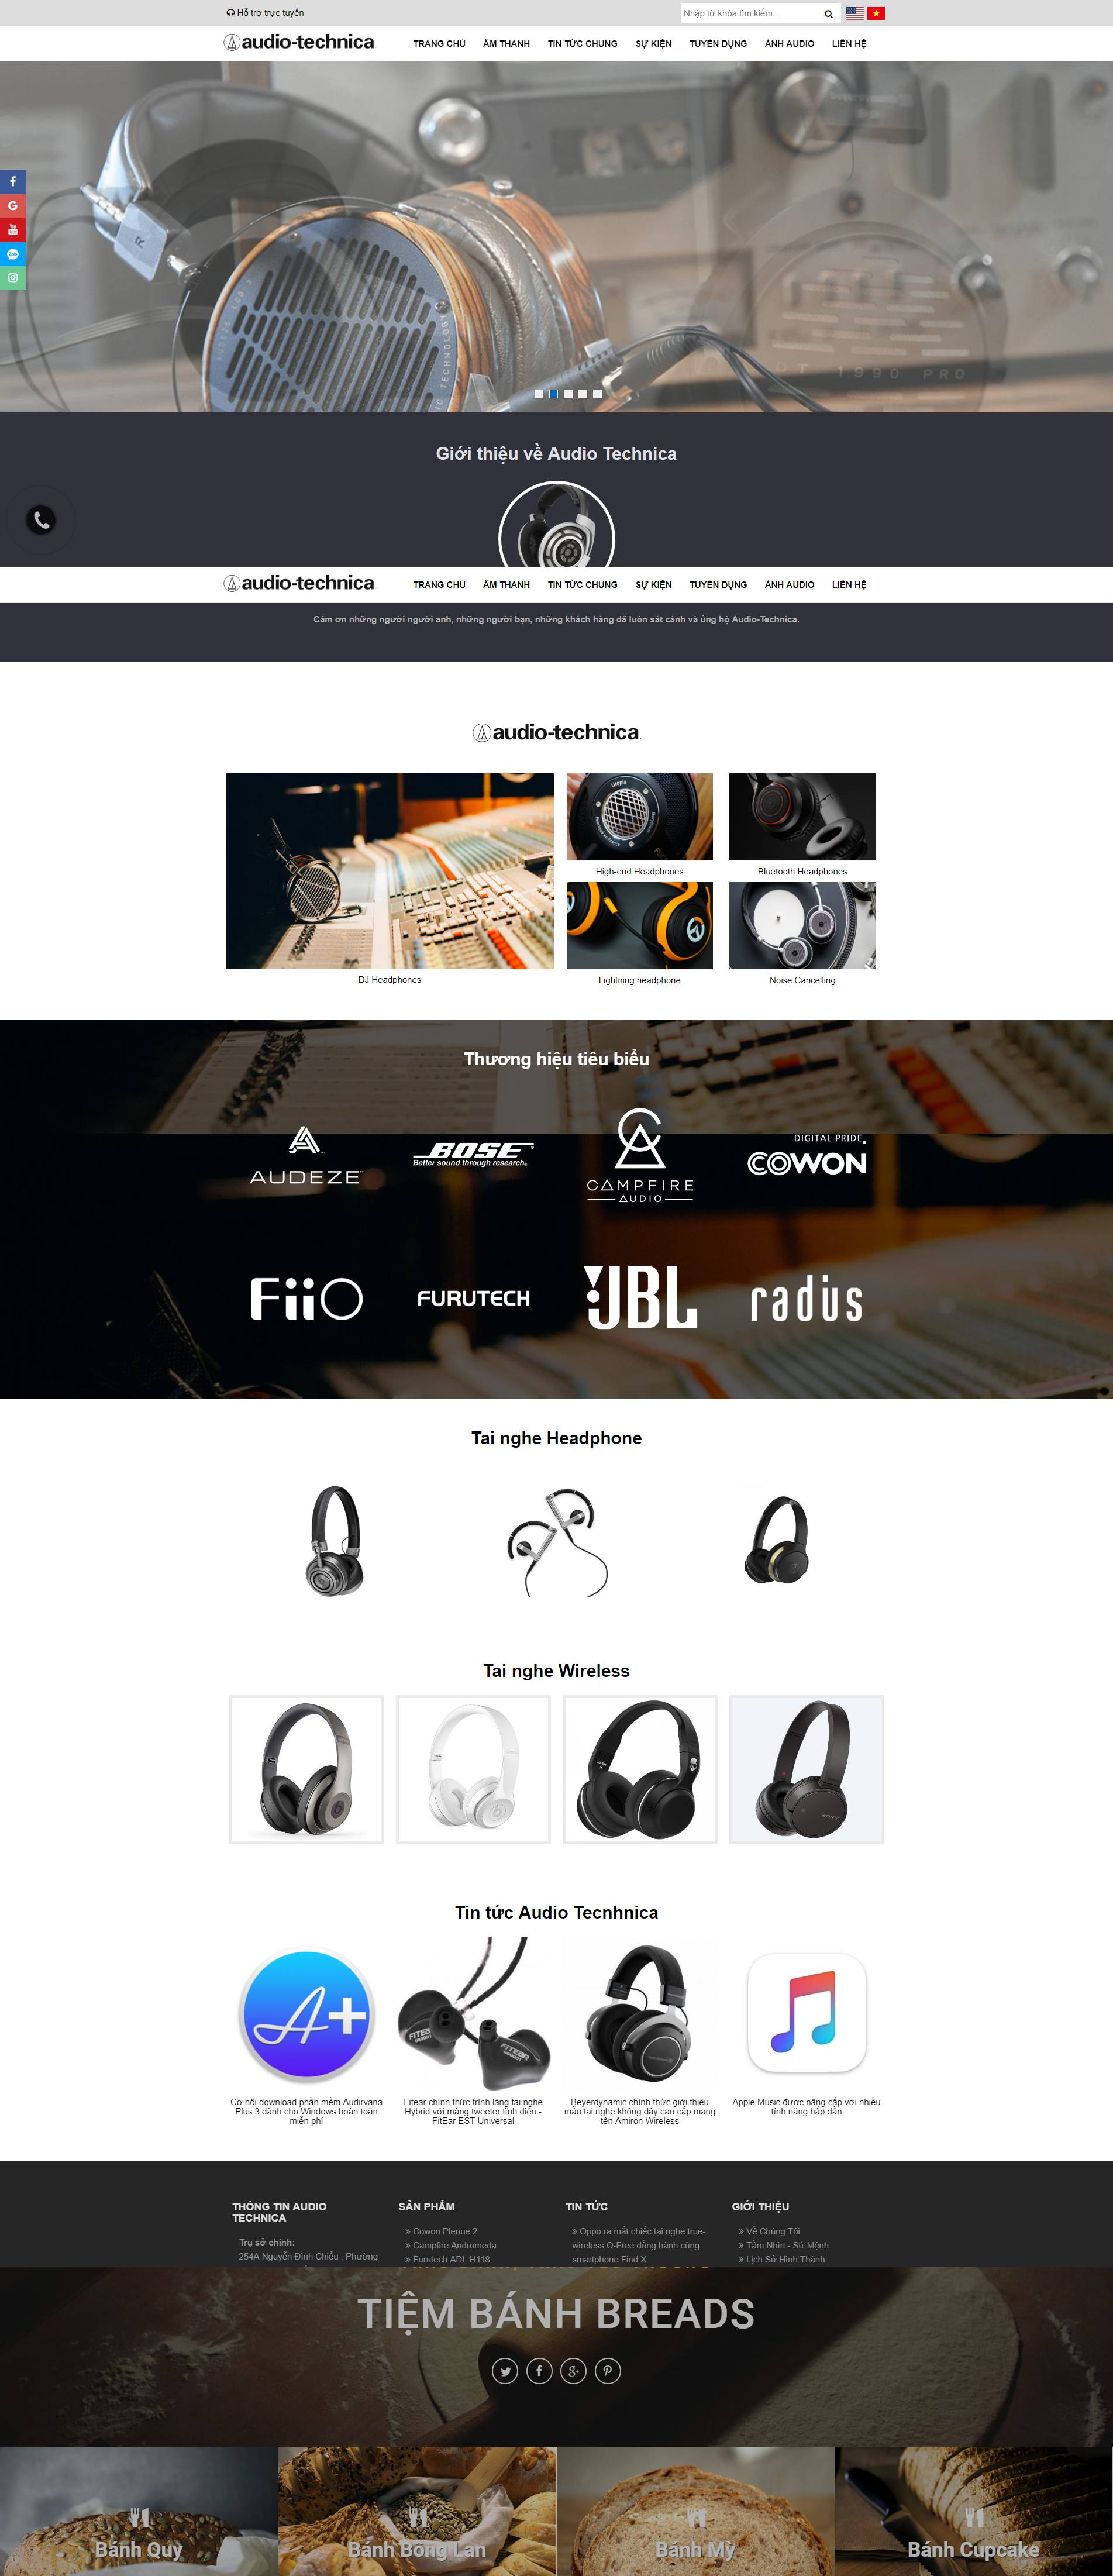 mẫu website Audio Technica